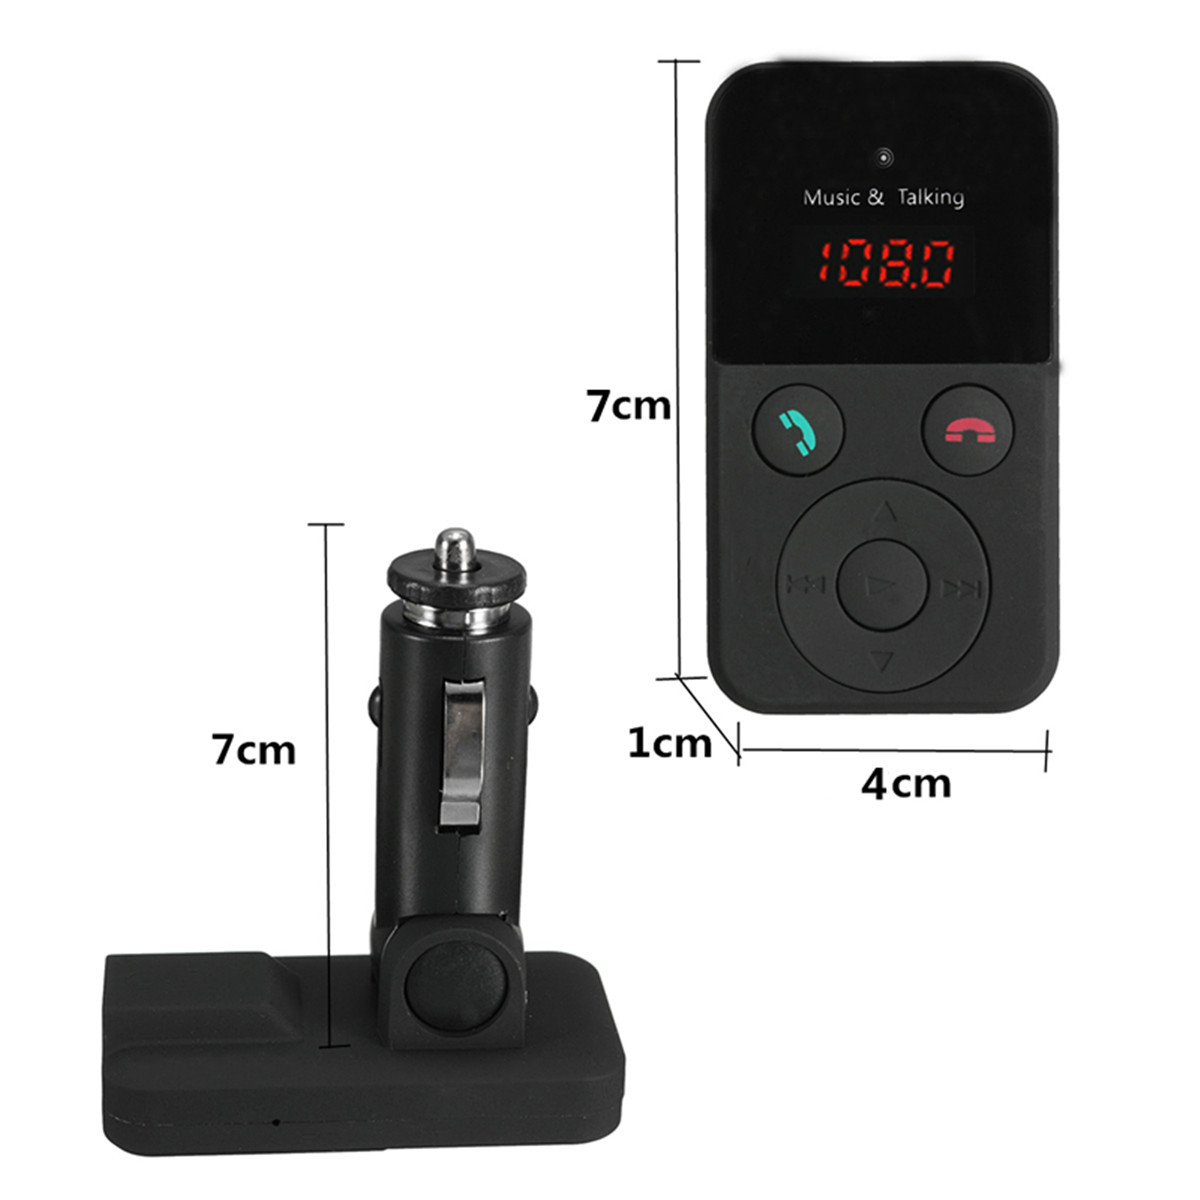 Mp3 Transmitter New York Skin Solutions Ba1404 Hi Fi Stereo Fm Buy Low Price High Quality With Worldwide Shipping On Aliexpresscomour Store Included Modulator Bluetooth Car Kit Mp4